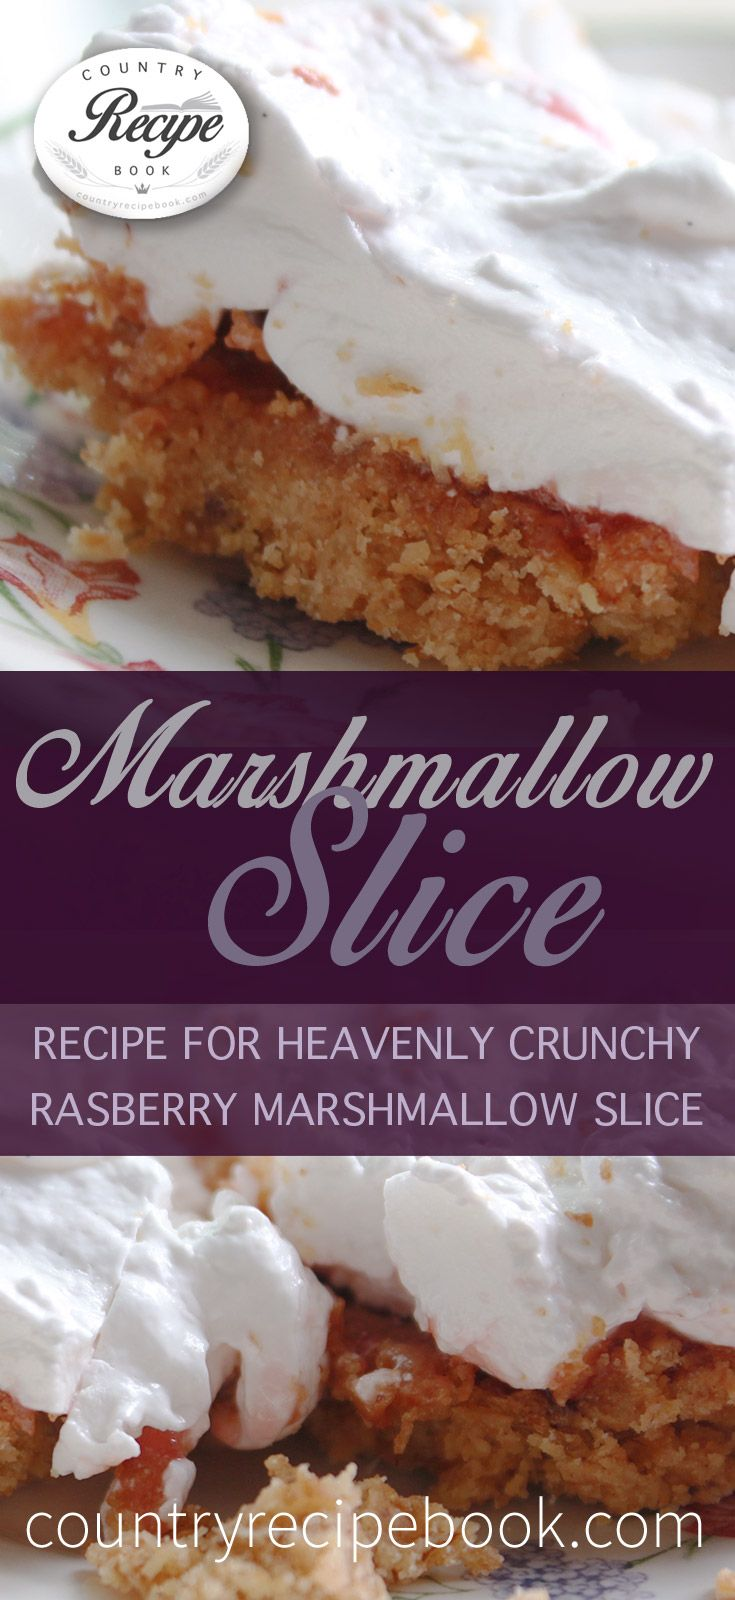 Crunchy Marshmallow Slice Recipe. Make this recipe which uses a crunchy Weetabix (Weet-Bix) base, Rasberry and Marshmallow for a yummy treat.